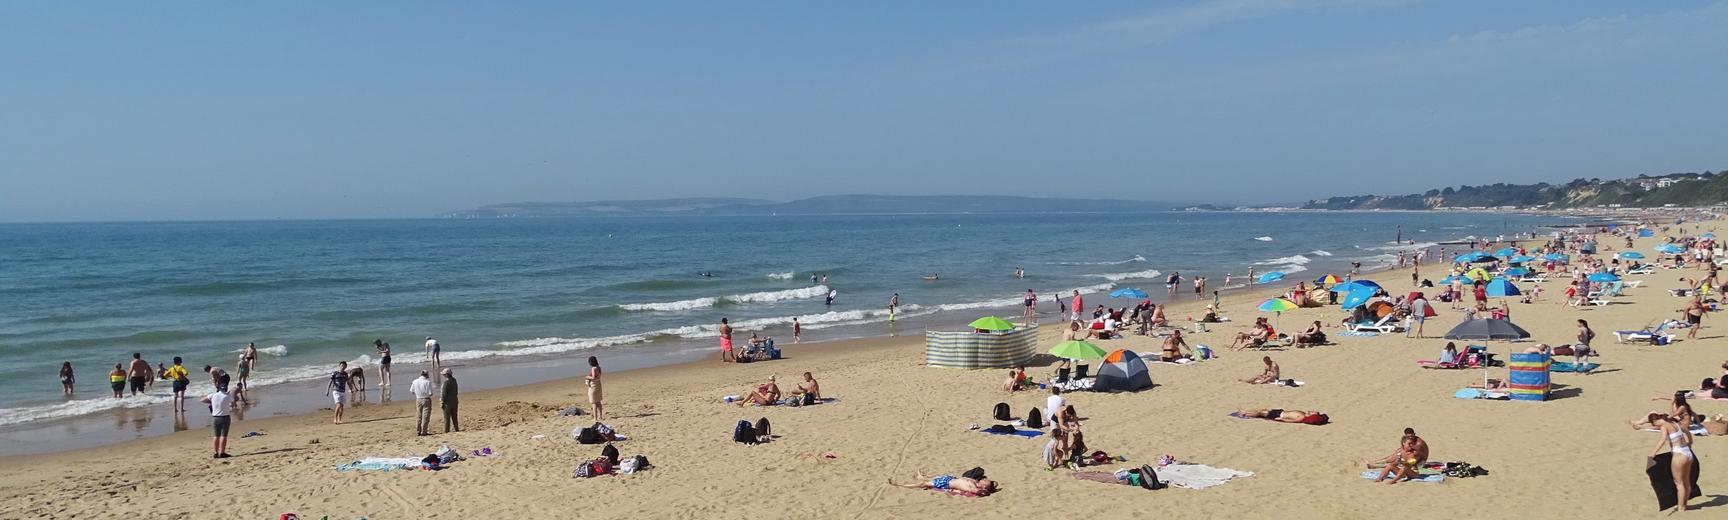 Bournemouth beach on a busy summer's day